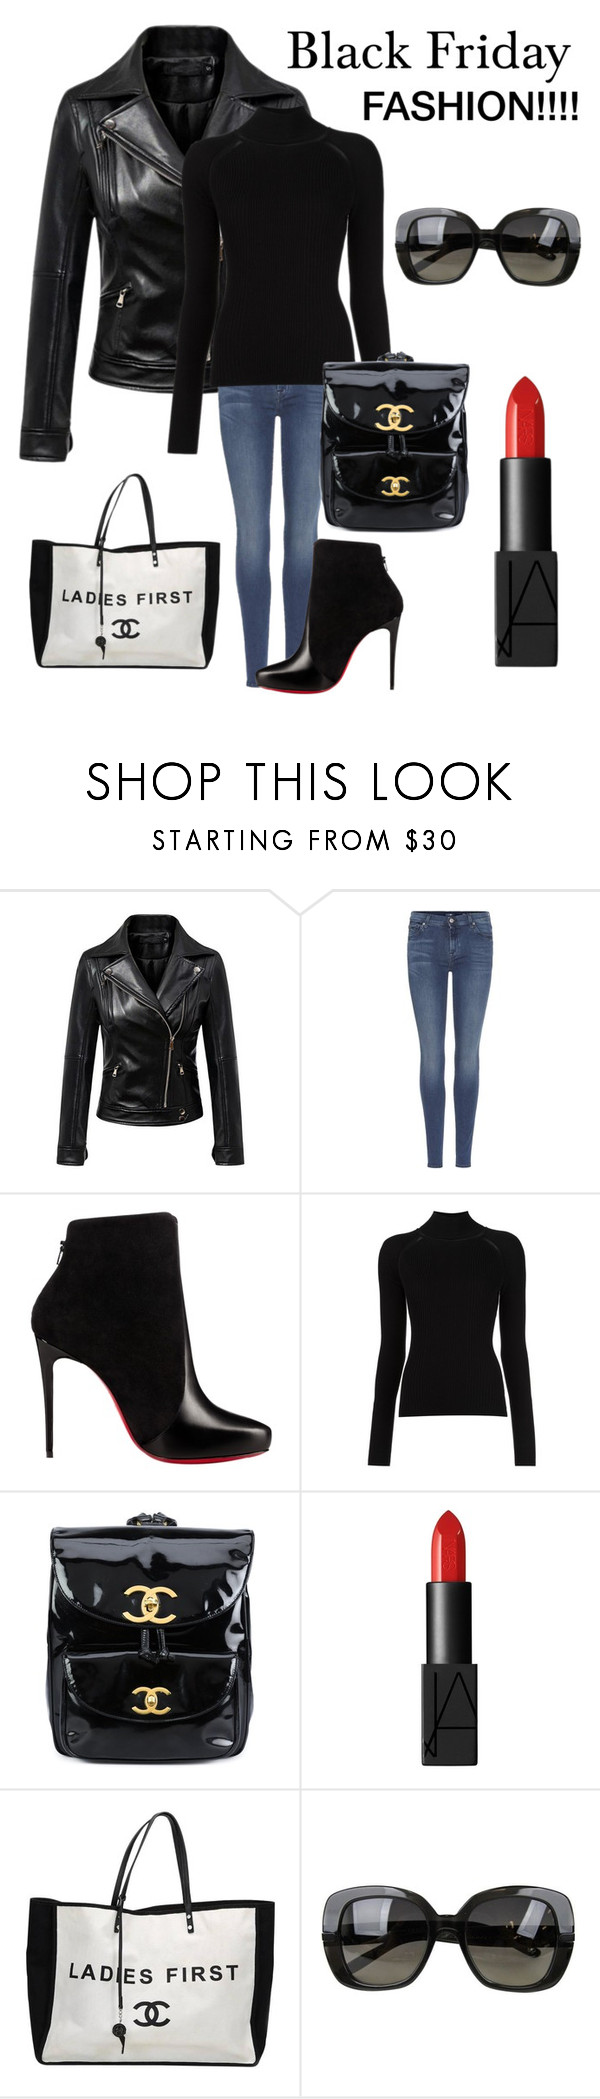 """Happy Black Friday"" by kotnourka ❤ liked on Polyvore featuring Chicnova Fashion, 7 For All Mankind, Christian Louboutin, Misha Nonoo, Chanel, NARS Cosmetics and Bottega Veneta"